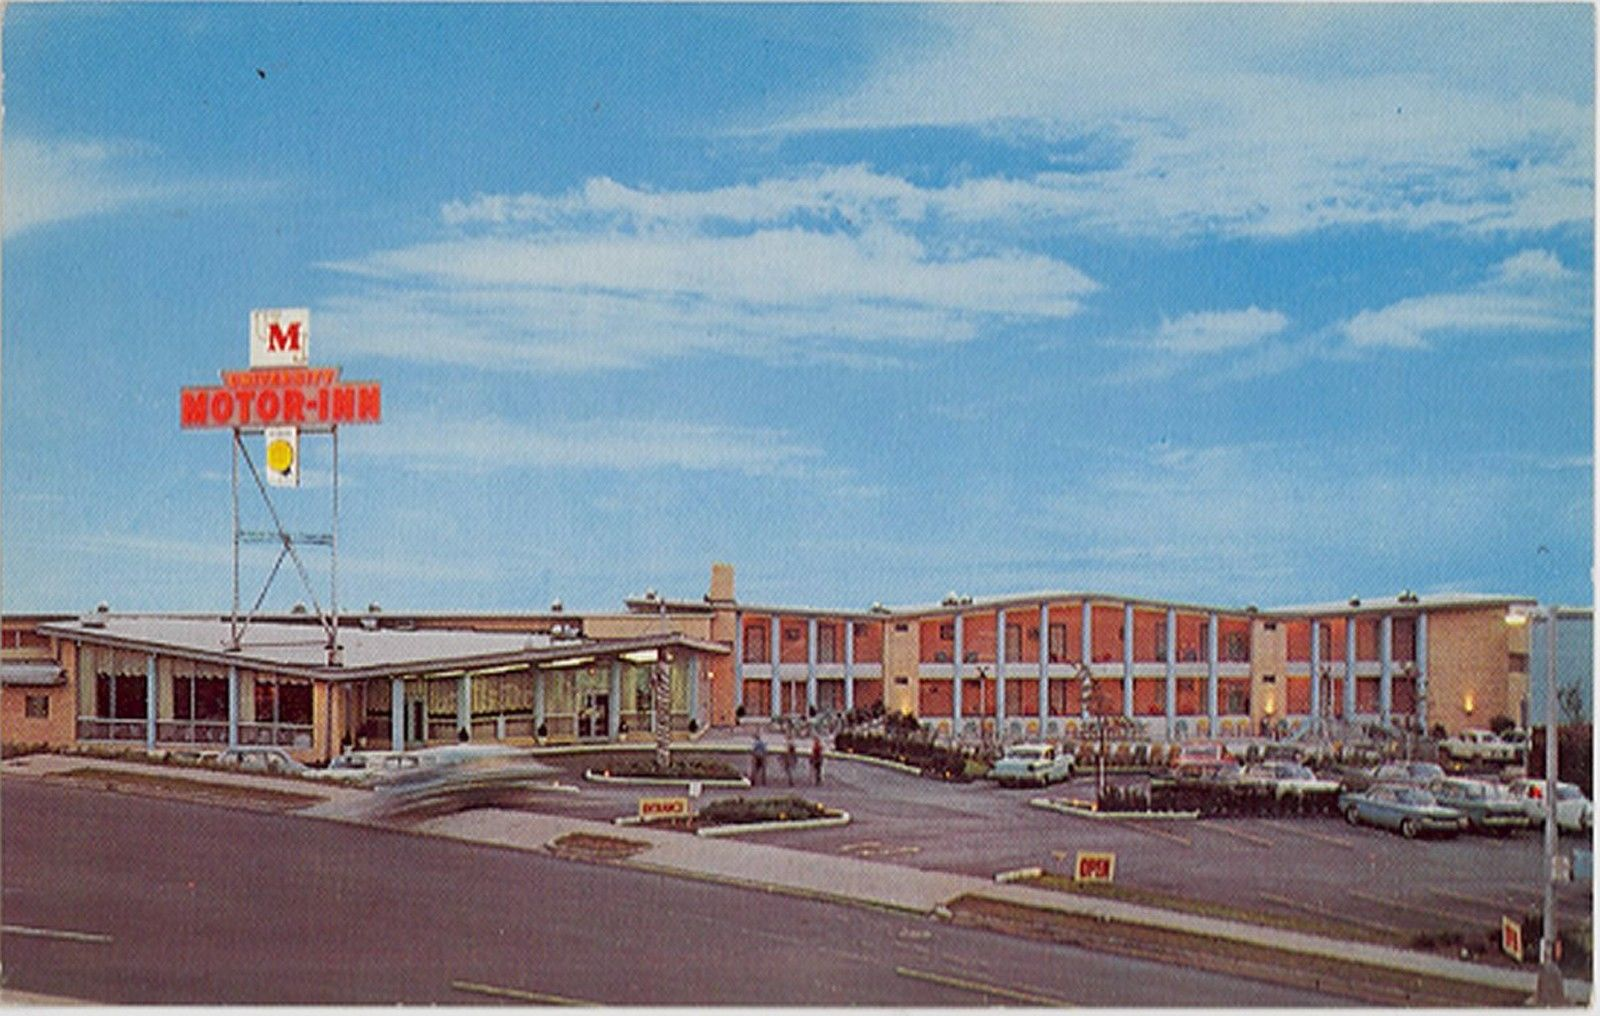 A postcard of University Motor Inn at 600 University Avenue in 1960.